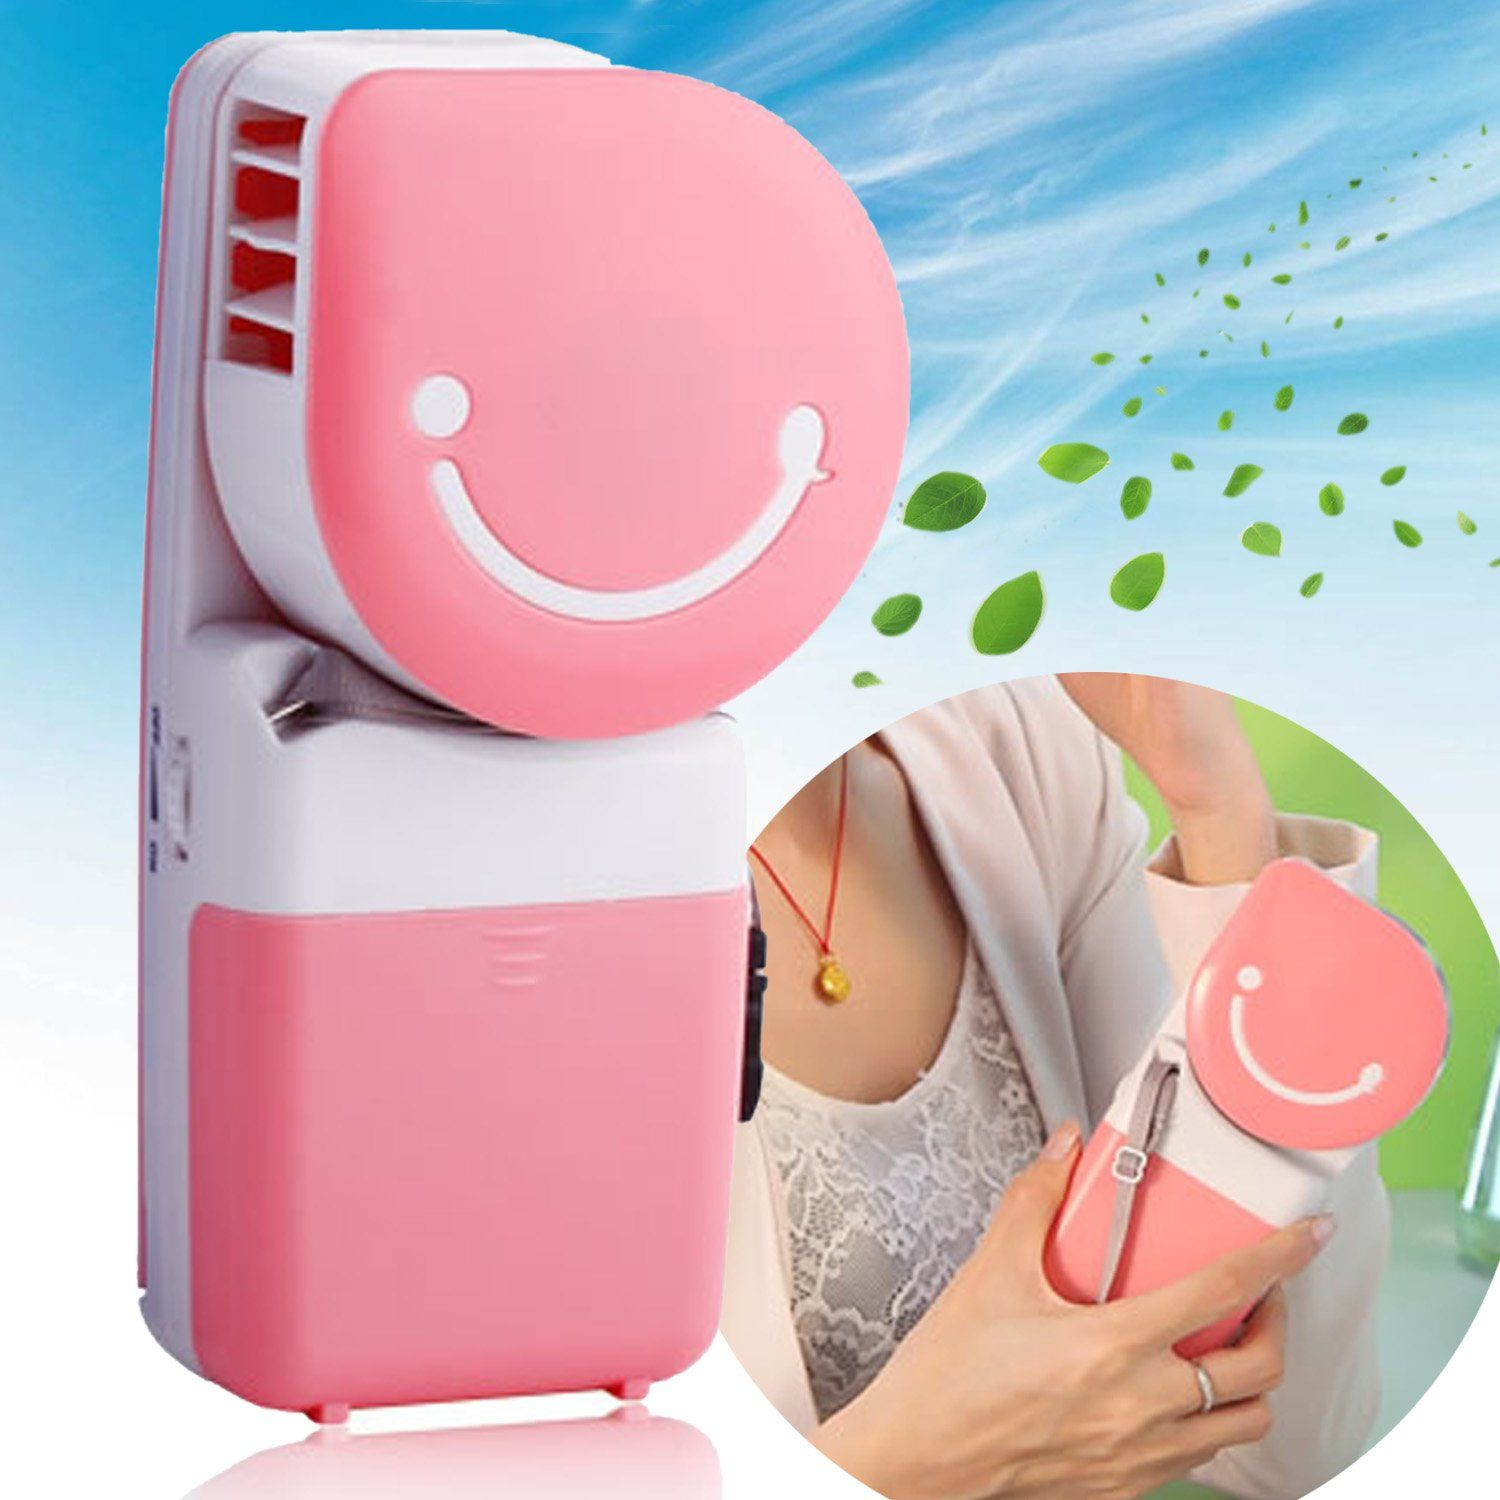 Mini Portable Handheld Bladeless Cool Fan Air Conditioner